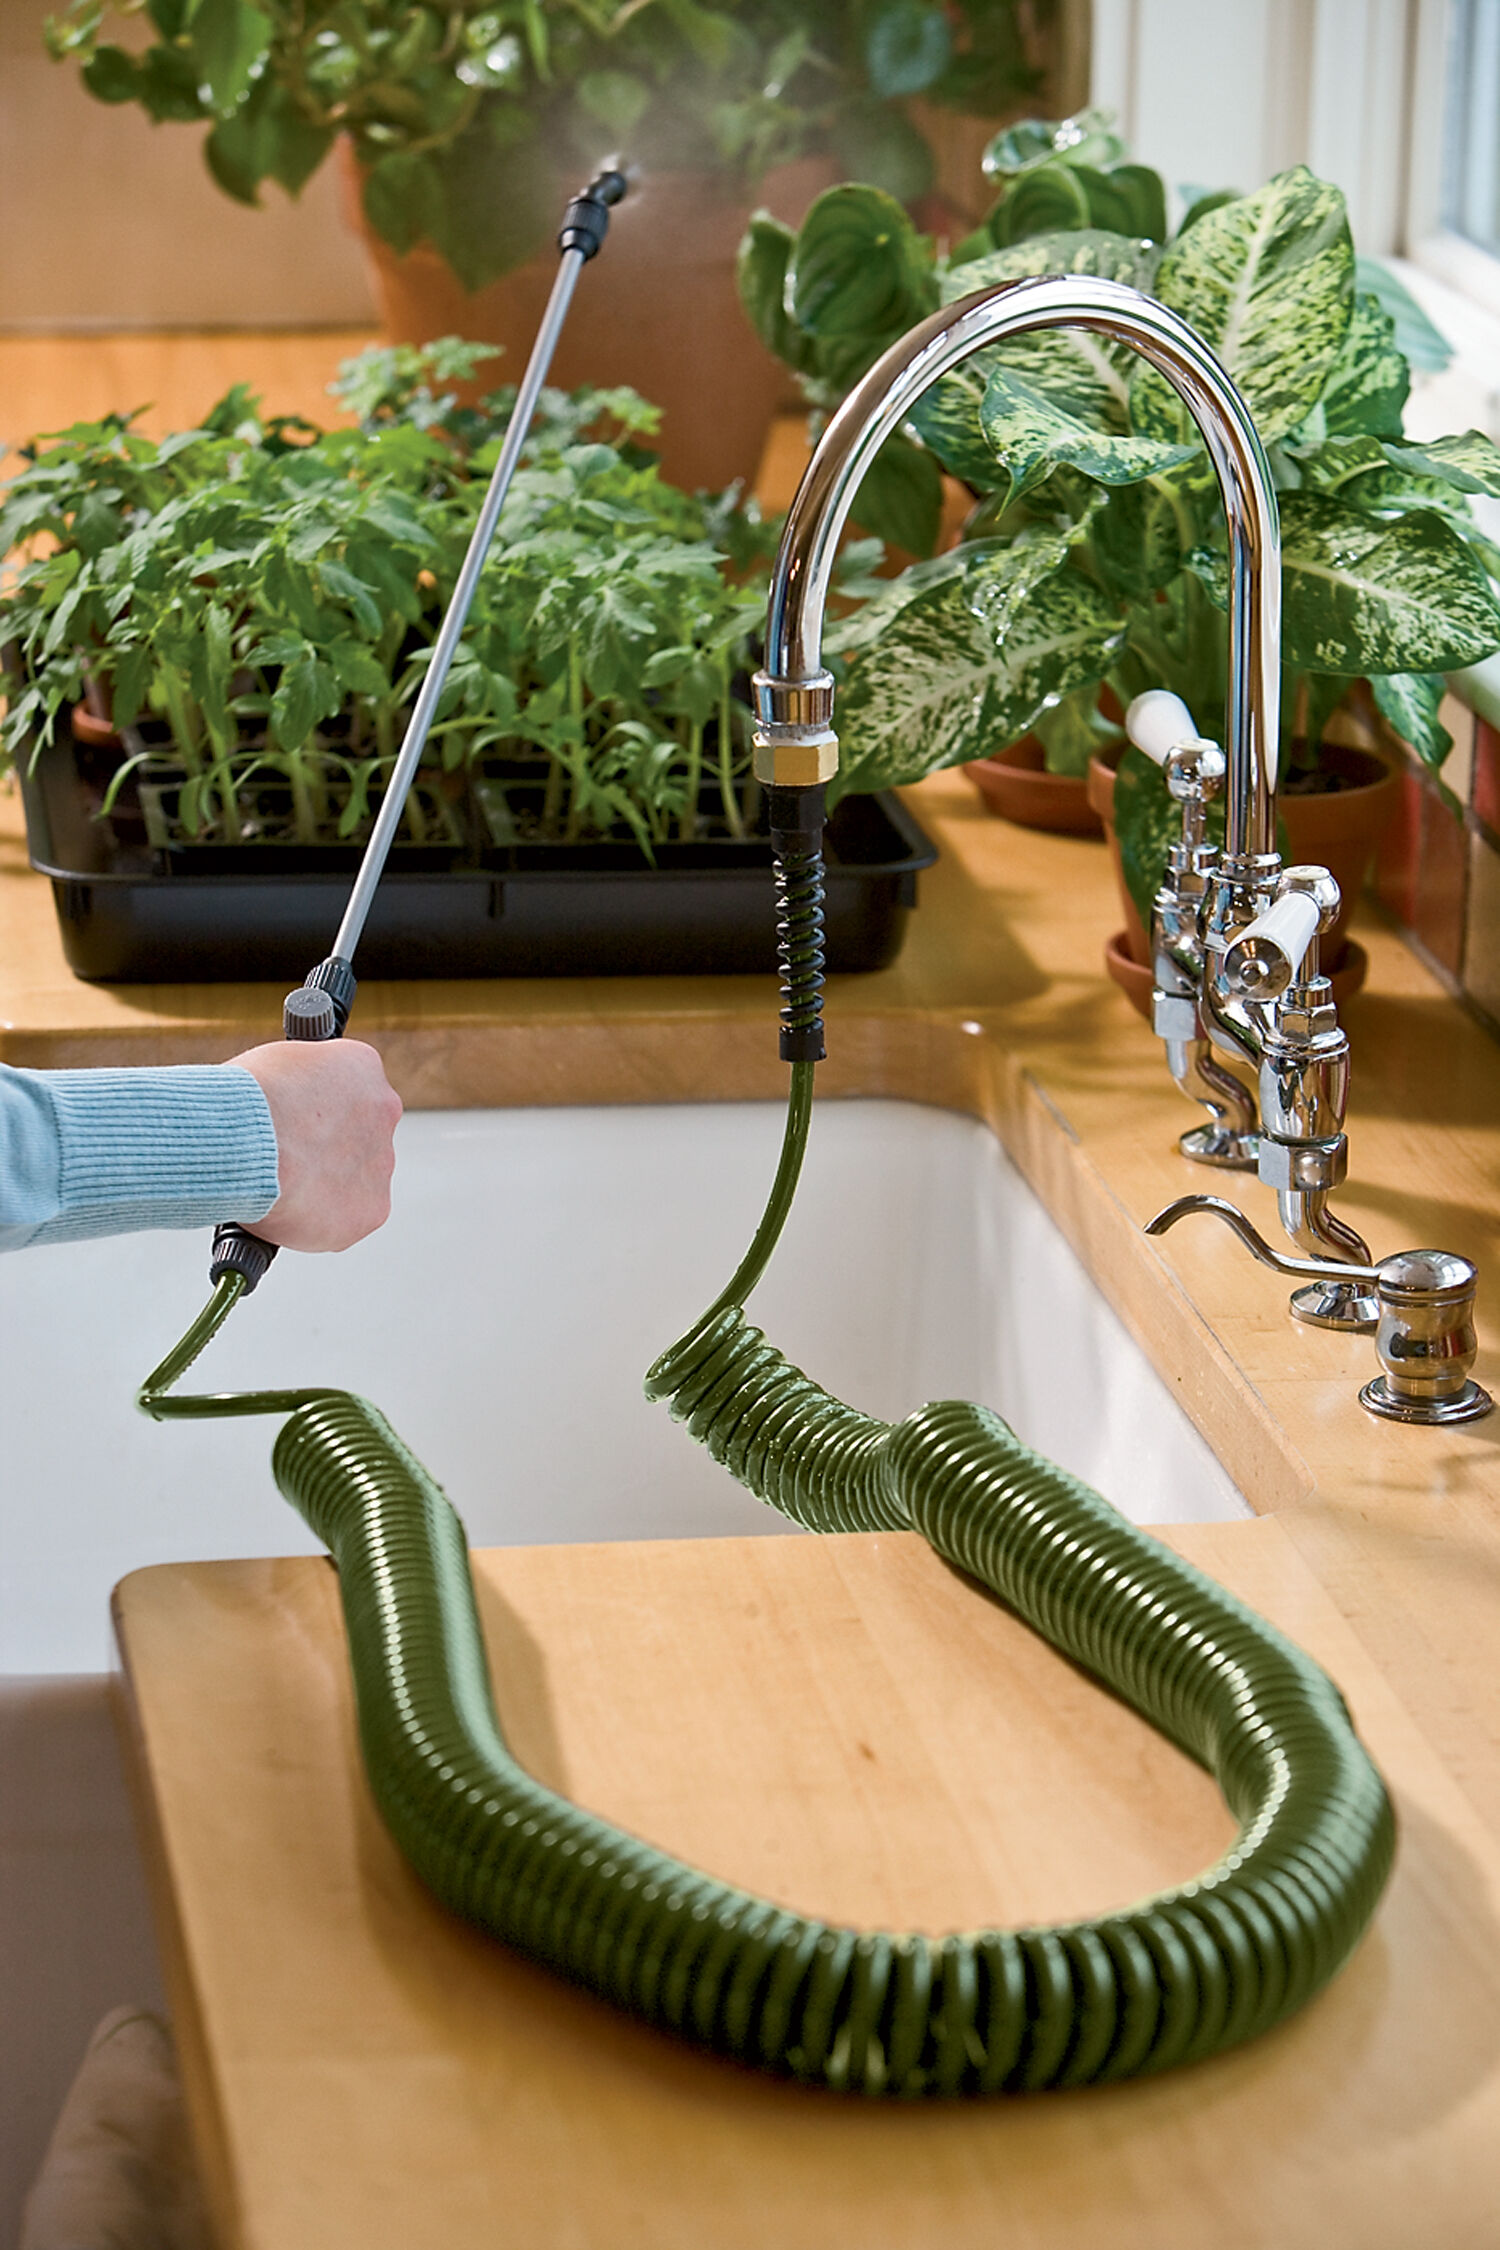 mini indoor garden hose sprayer with coil Indoor Plant Watering Hose - Mini Coil Indoor Garden Hose